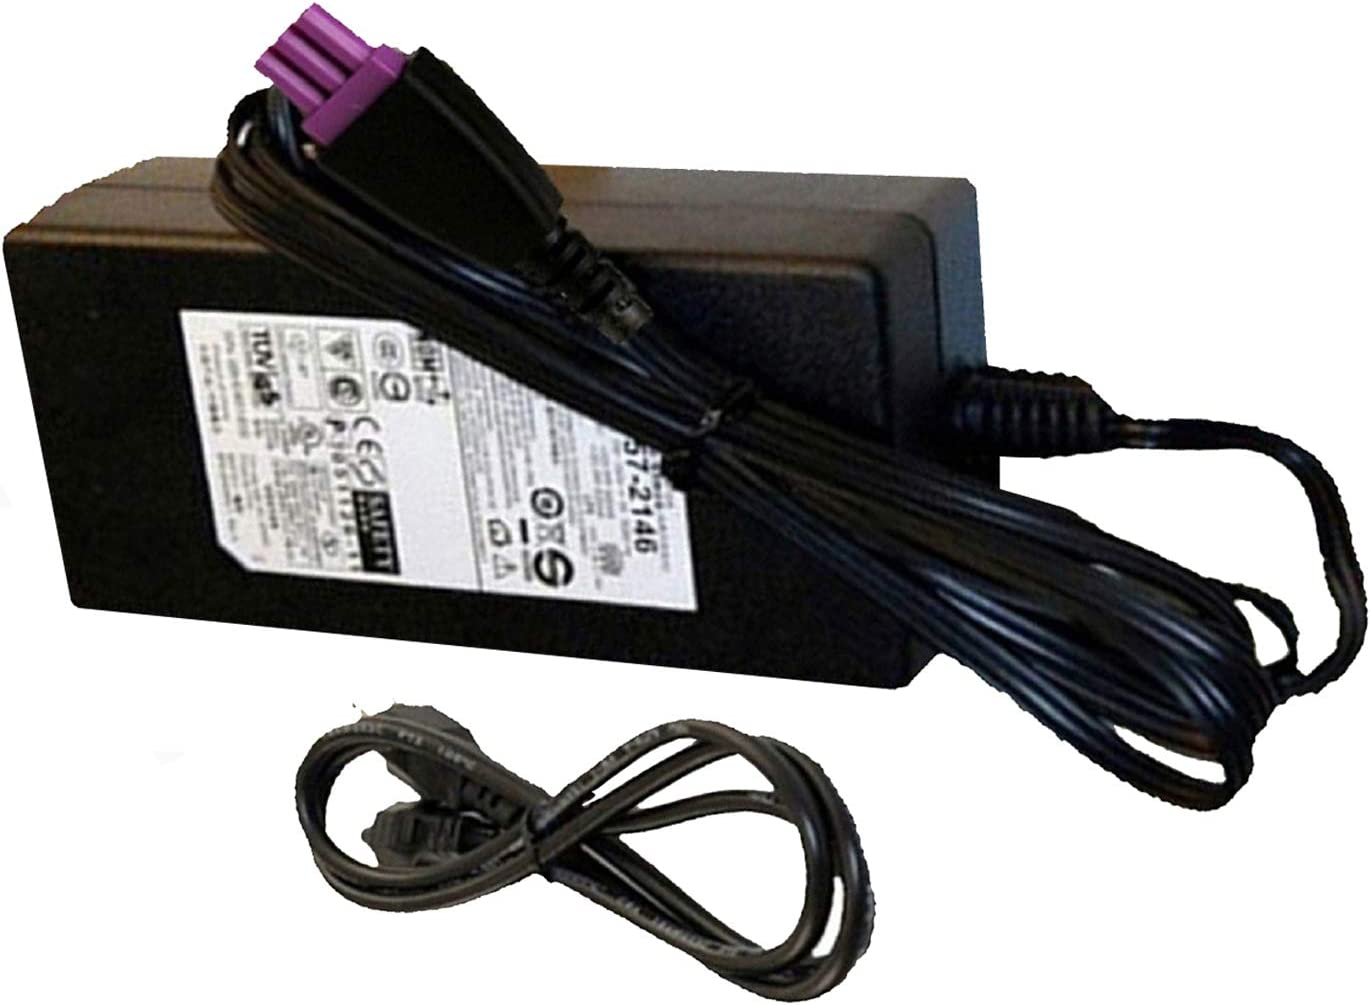 UpBright 32V AC/DC Adapter Replacement for HP Photosmart B210 B210A B210B B210C B210E CN216A#B1H C6175 C6183 D7160 C7200 Q3388AR Q3388A Q3388B Q3388C Photo Smart Plus AIO Inkjet Printer 32VDC 1560mA